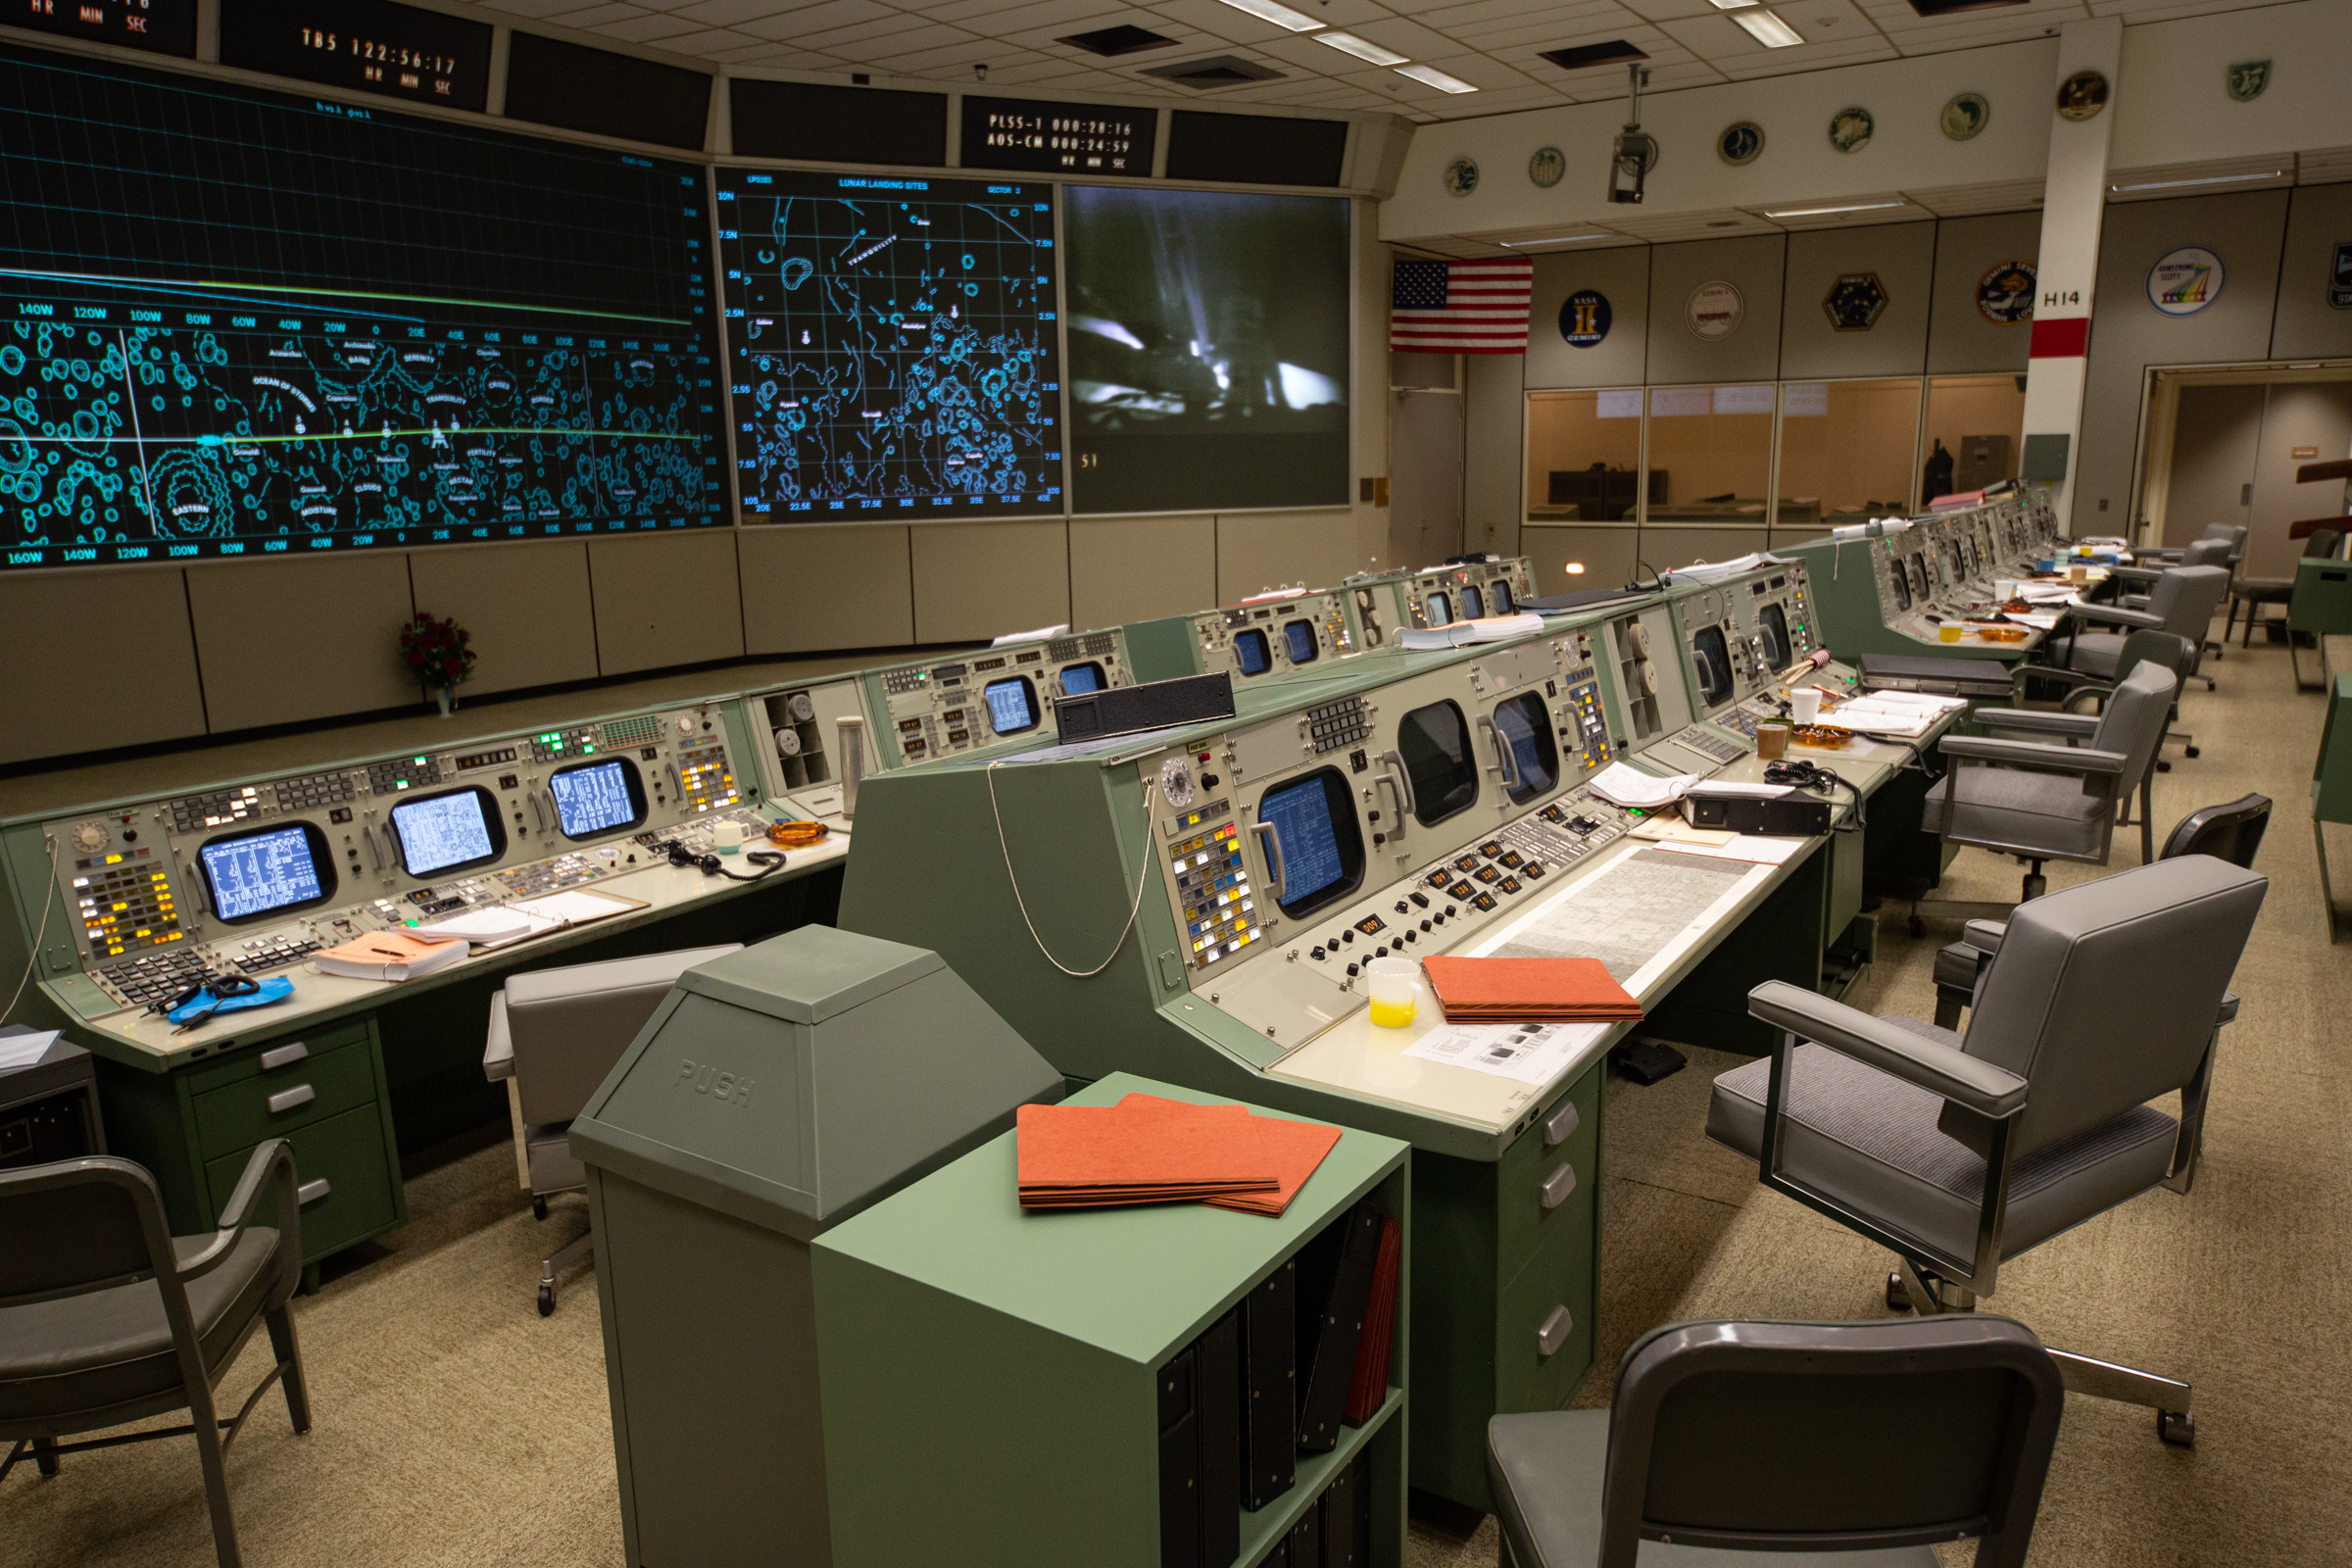 Space Center Houston Welcomes Visitors to the Newly Restored Apollo Mission Control Center